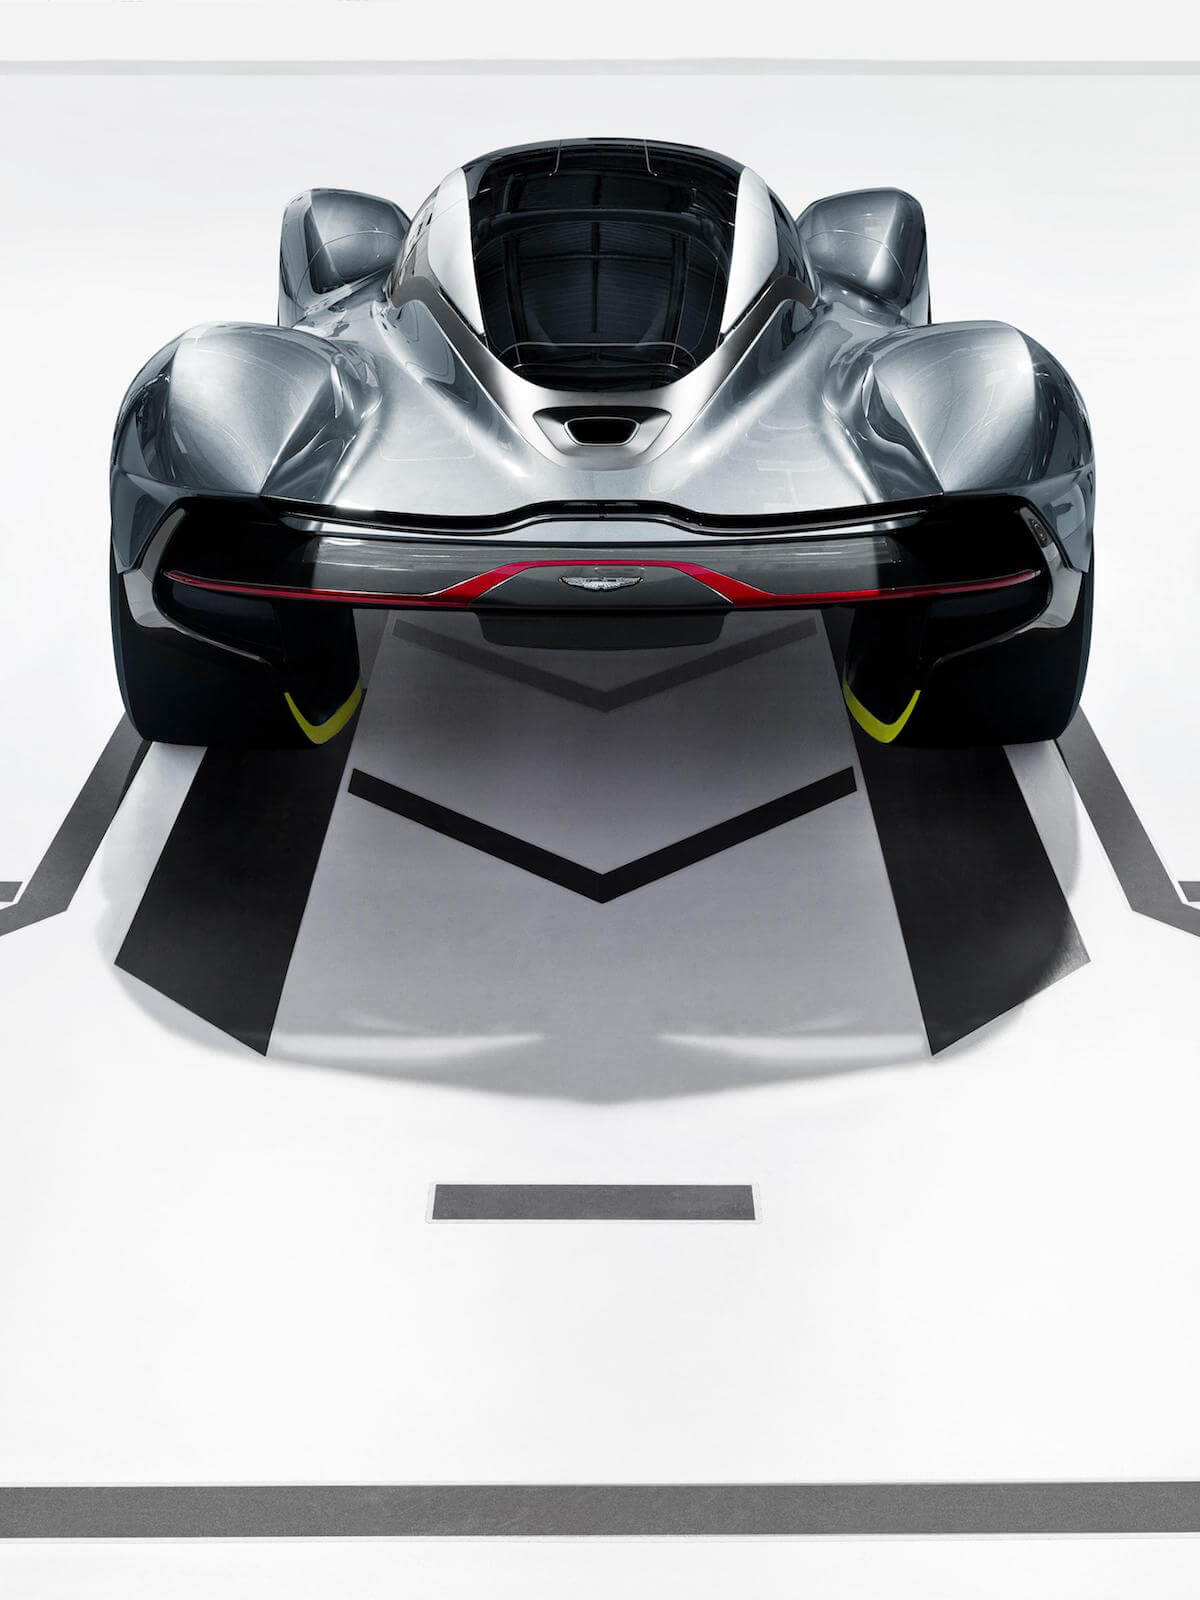 Aston Martin Red Bull AM-RB 001 Hypercar 4